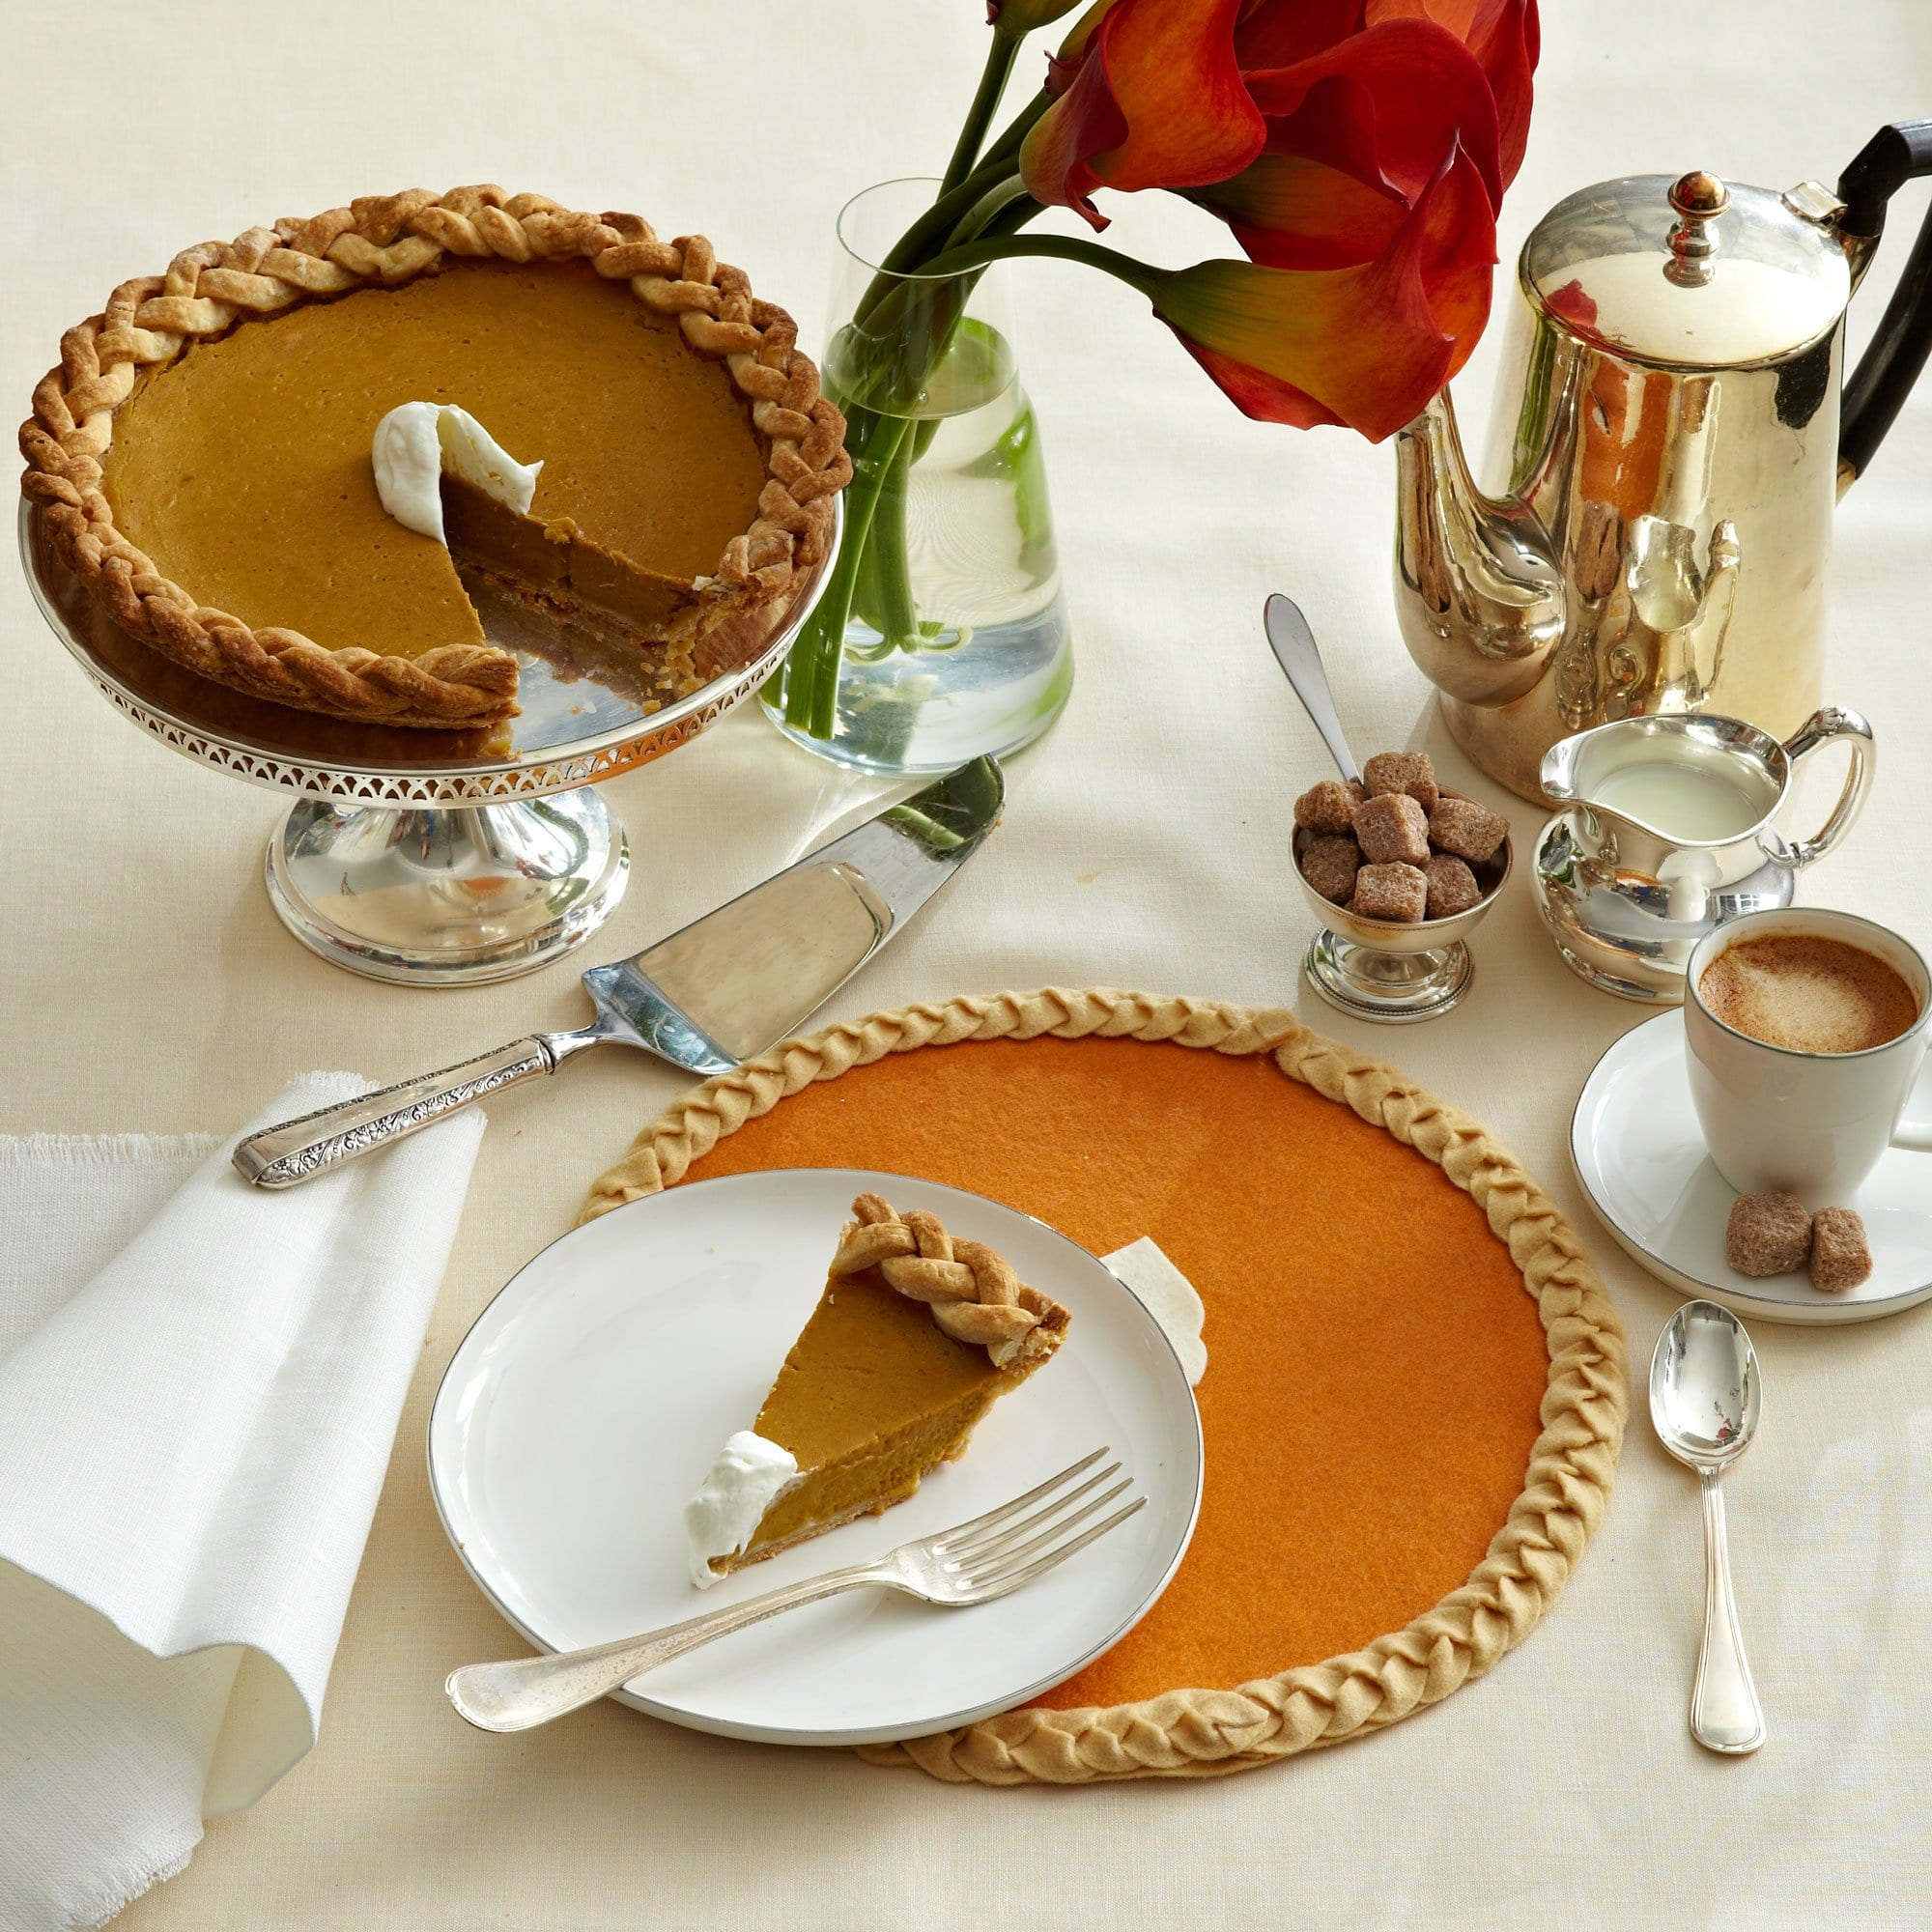 Darcy Miller Designs Felt Pies Thanksgiving, Pie, Pumpkin Pie, Cherry Pie, Felt Craft, Downloadable Template, DIY placemat, DIY Trivet, Coaster, Table Décor